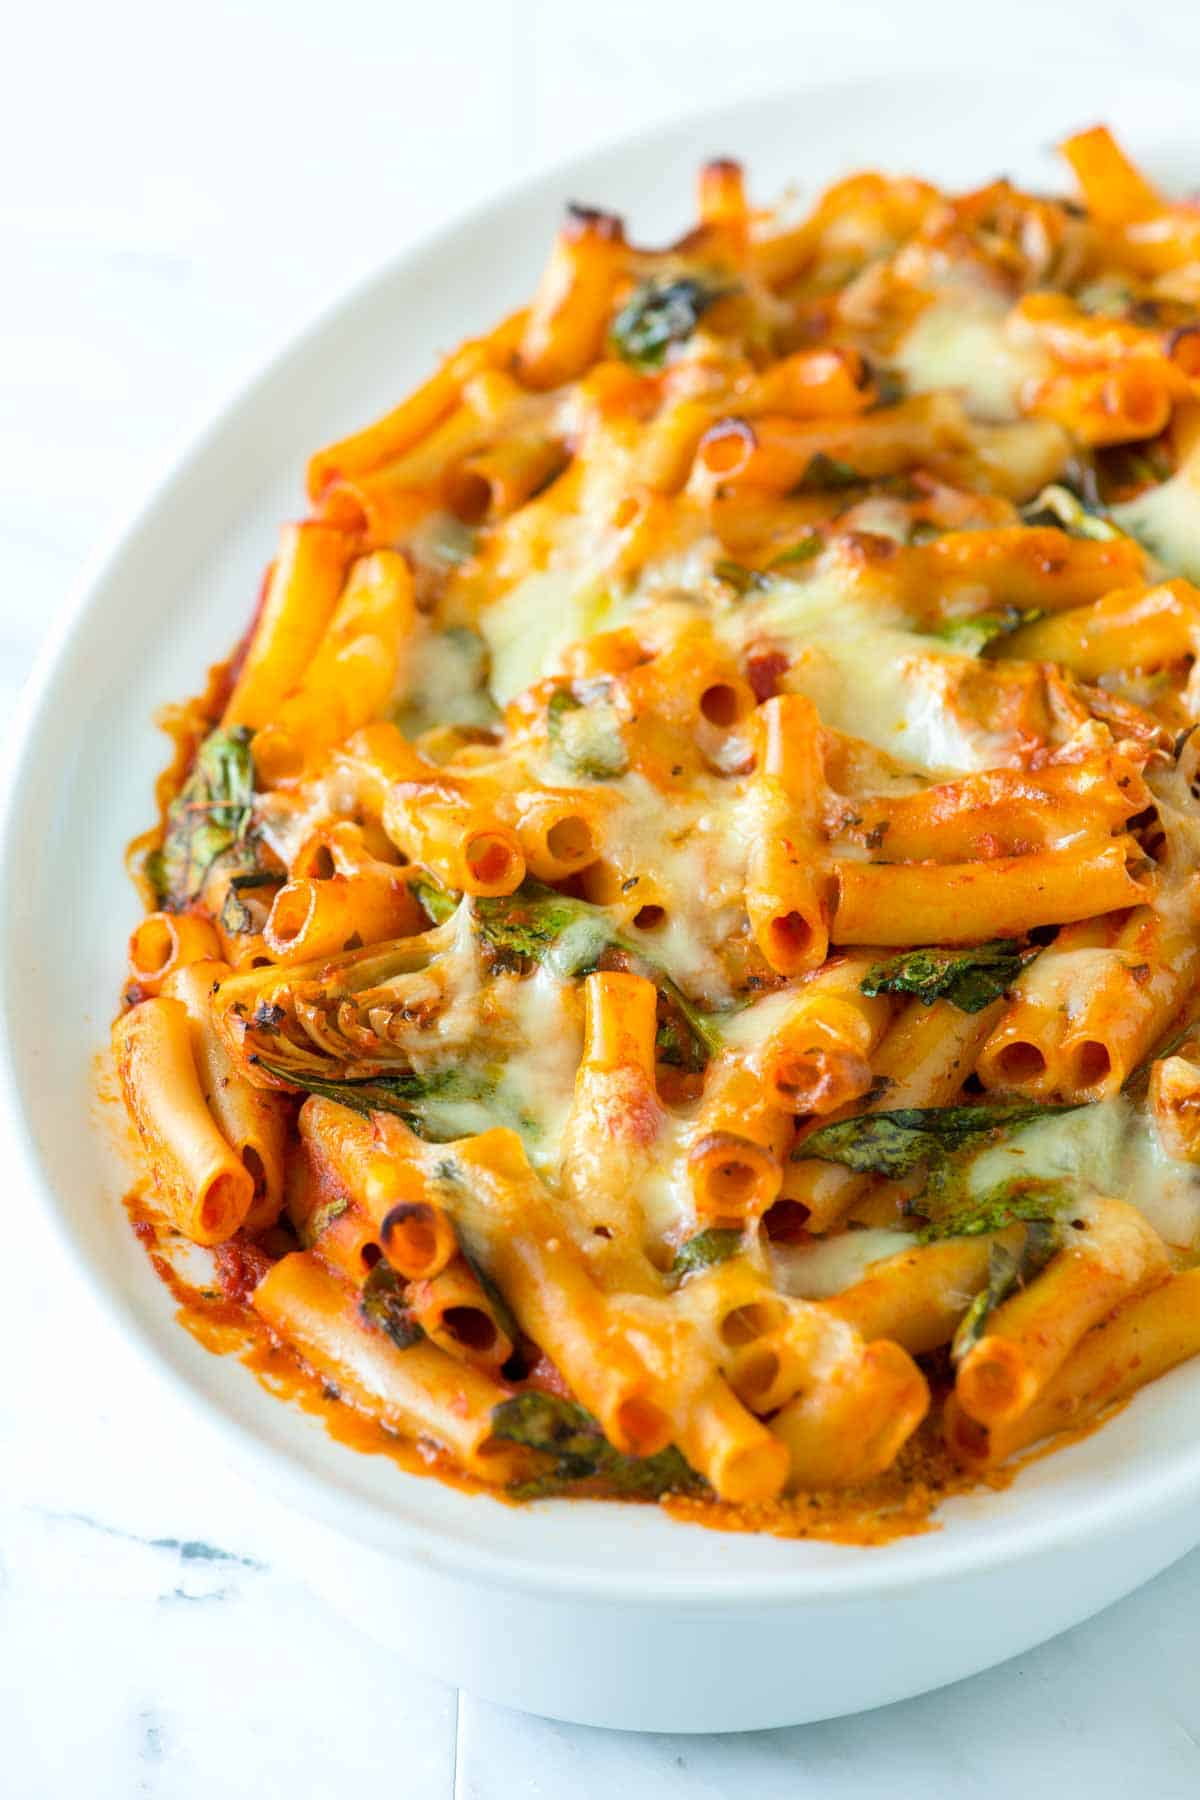 How to Make Seriously Good Baked Ziti with Spinach, Artichokes, and a Creamy Pesto Layer